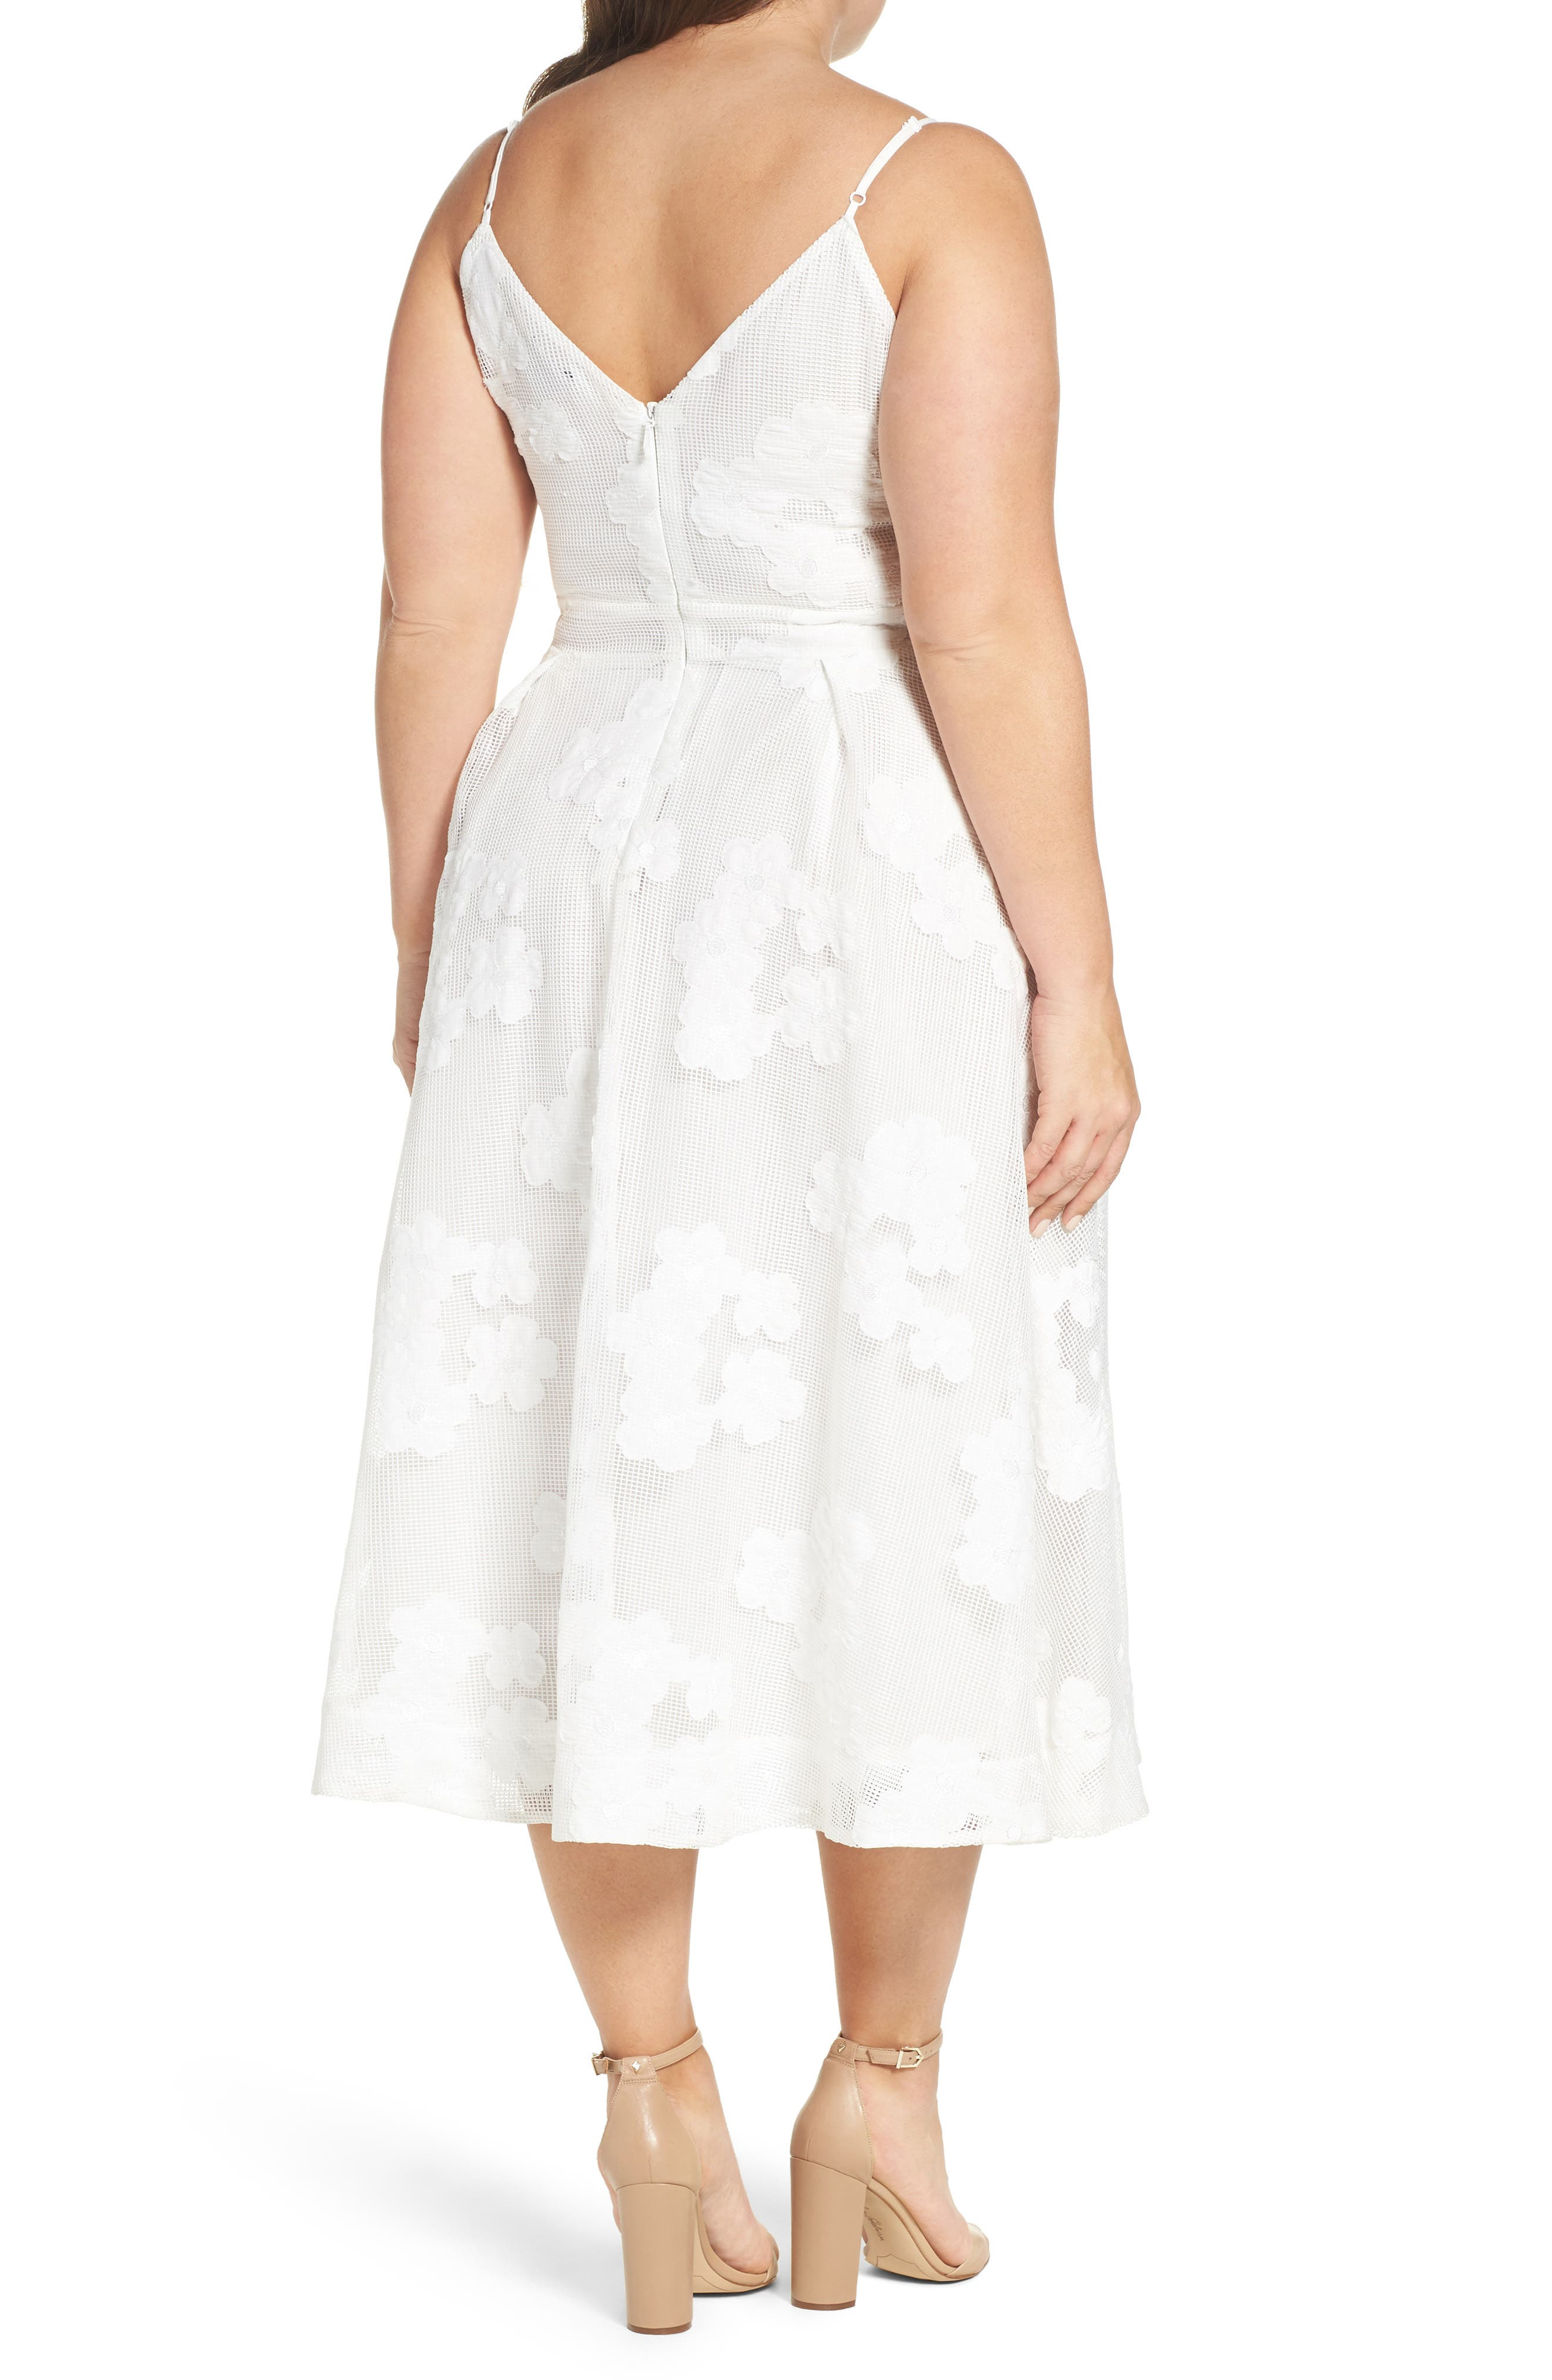 CITY CHIC, Mesh Floral Sundress, Alternate thumbnail 3, color, IVORY